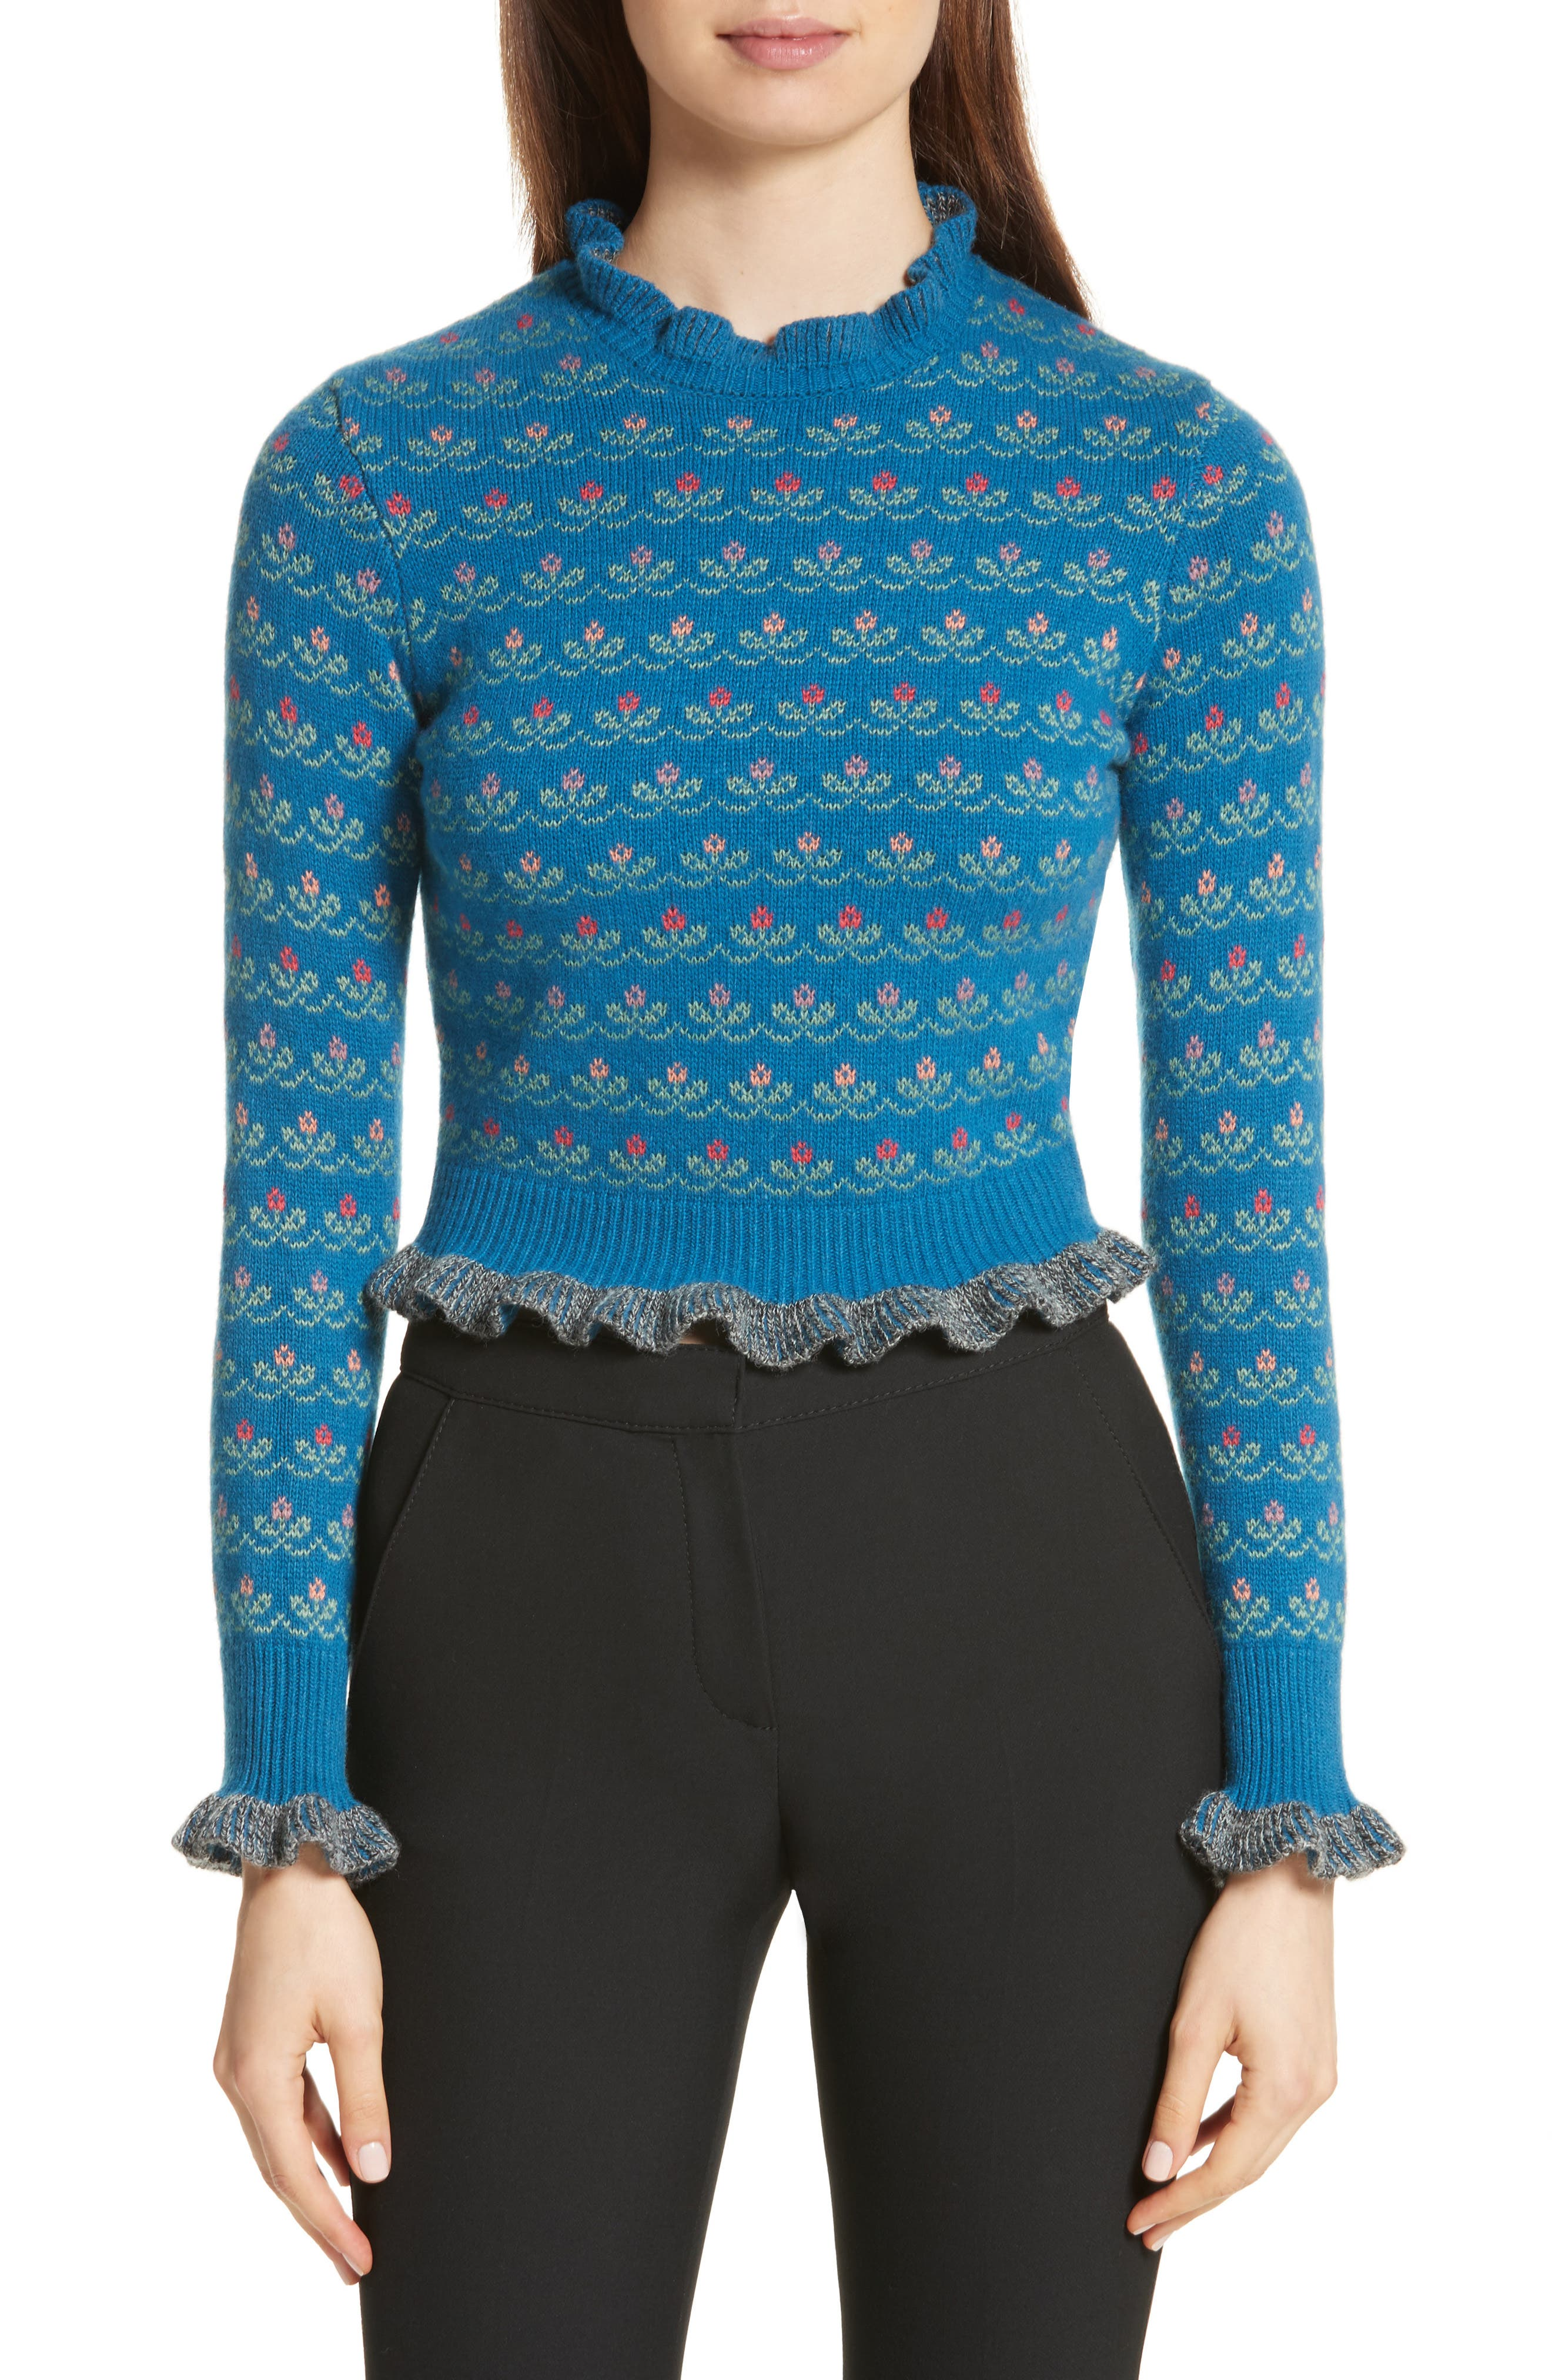 Main Image - RED Valentino Floral Jacquard Carded Wool Blend Sweater